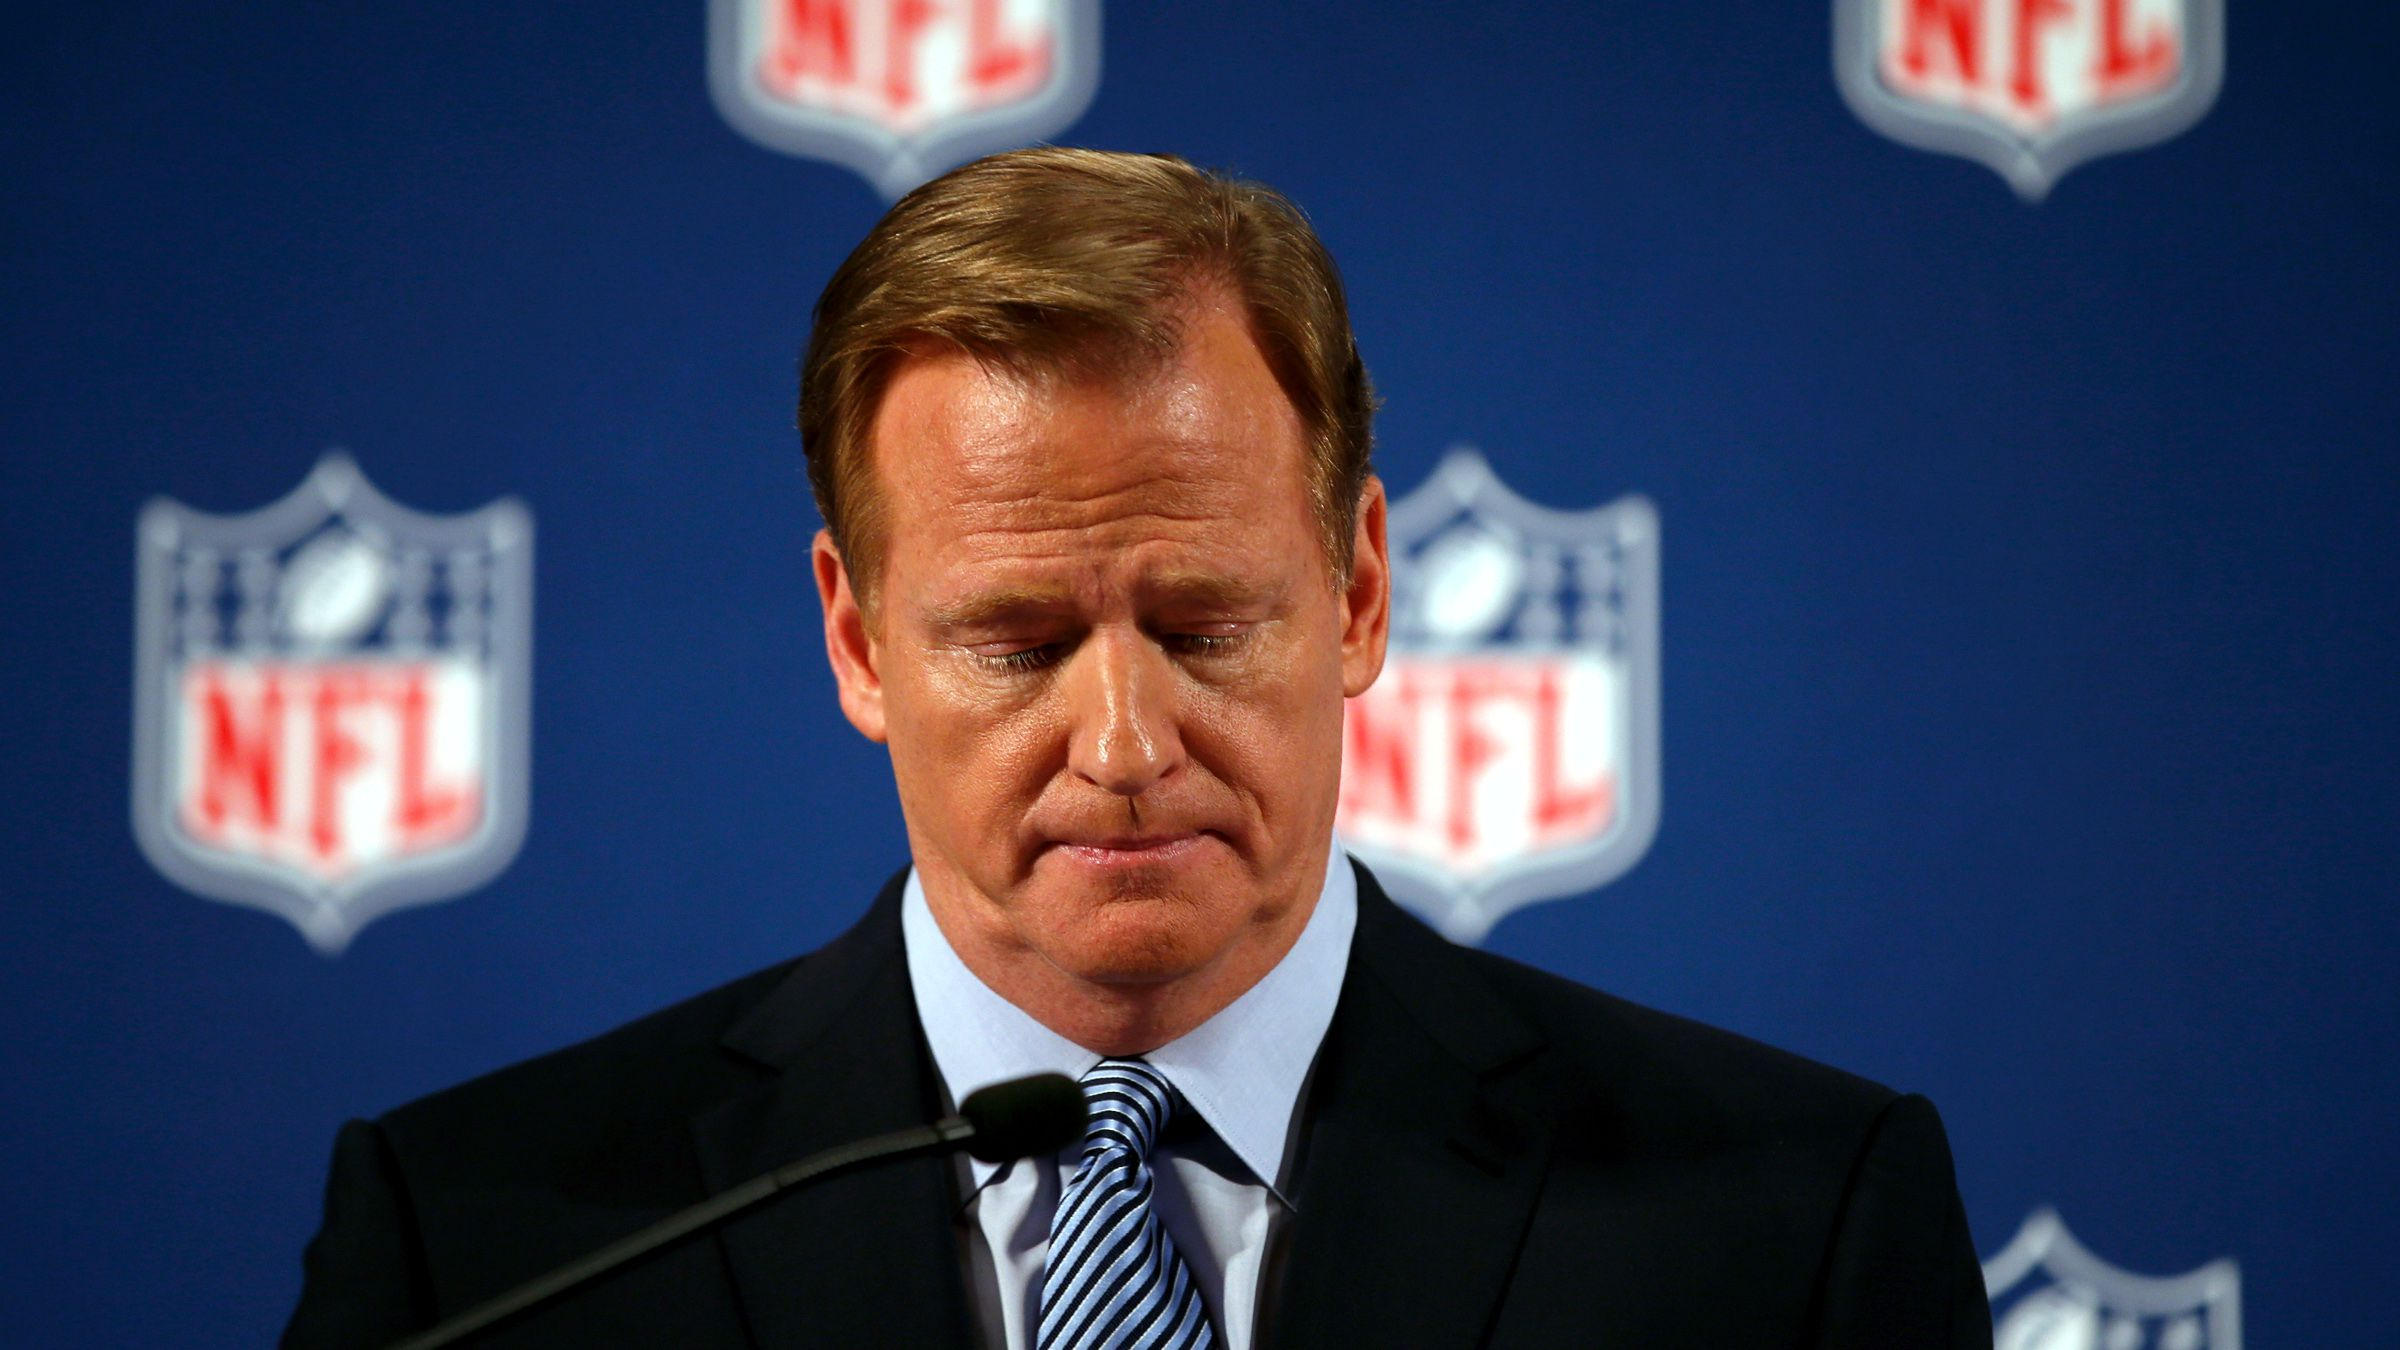 National Football League (NFL) Commissioner Roger Goodell speaks at a news conference to address domestic violence issues and the NFL's Personal Conduct Policy, in New York, September 19, 2014.